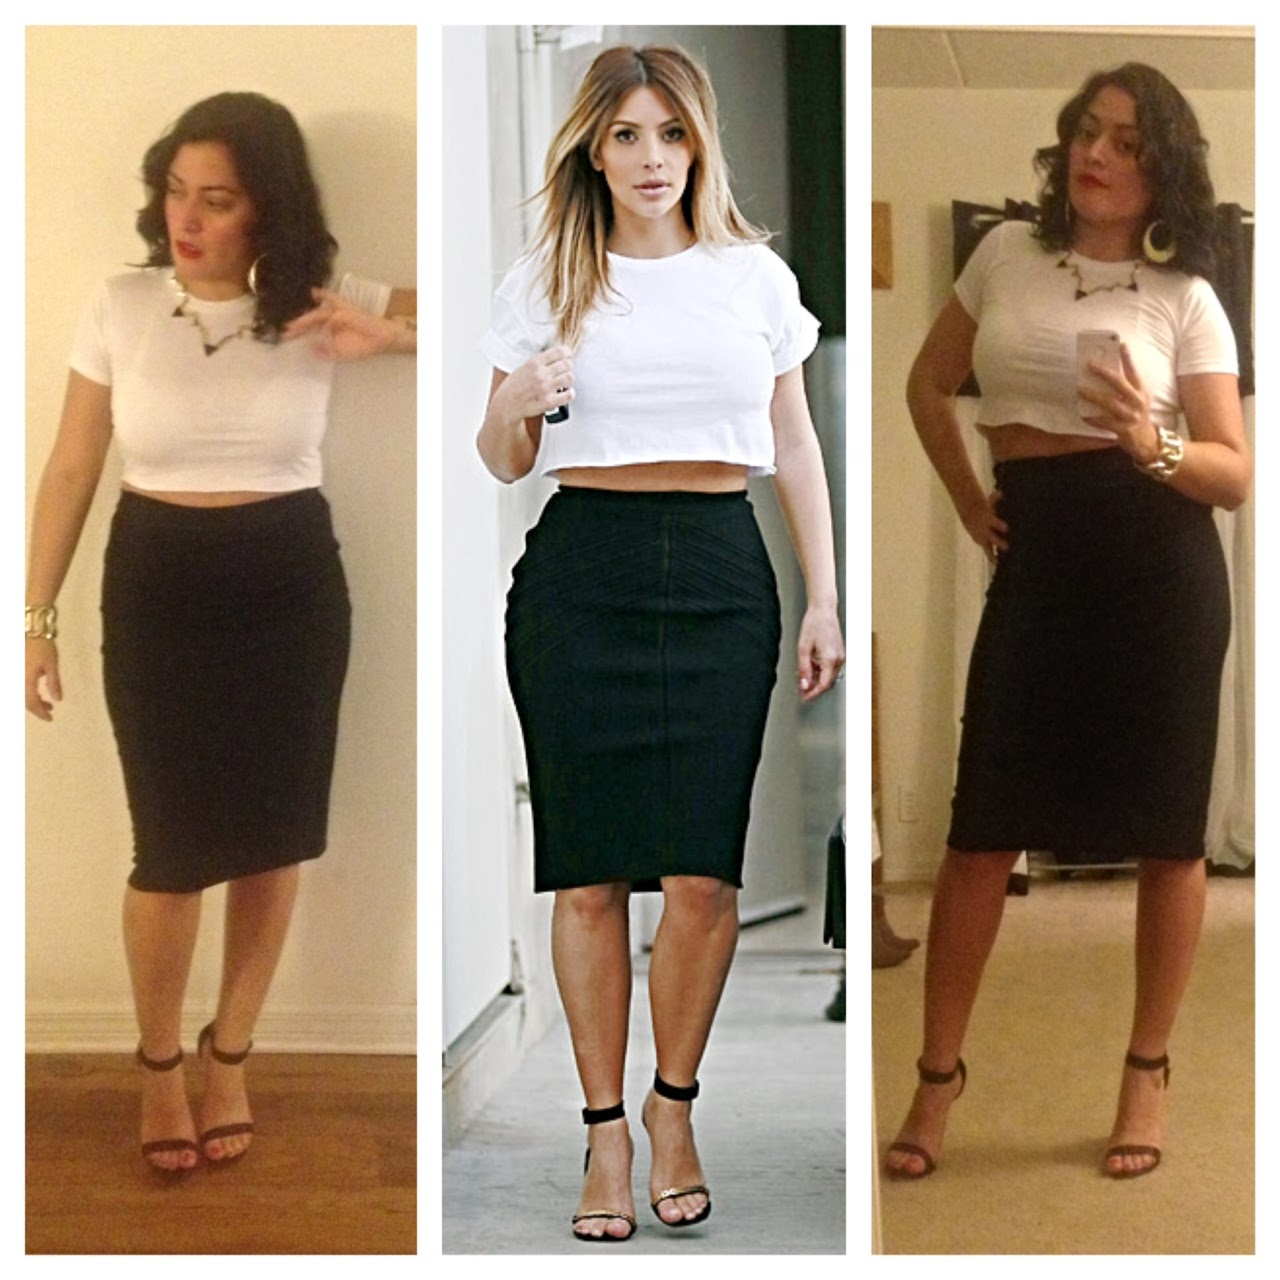 chazzcity pencil skirt crop top chazzcity